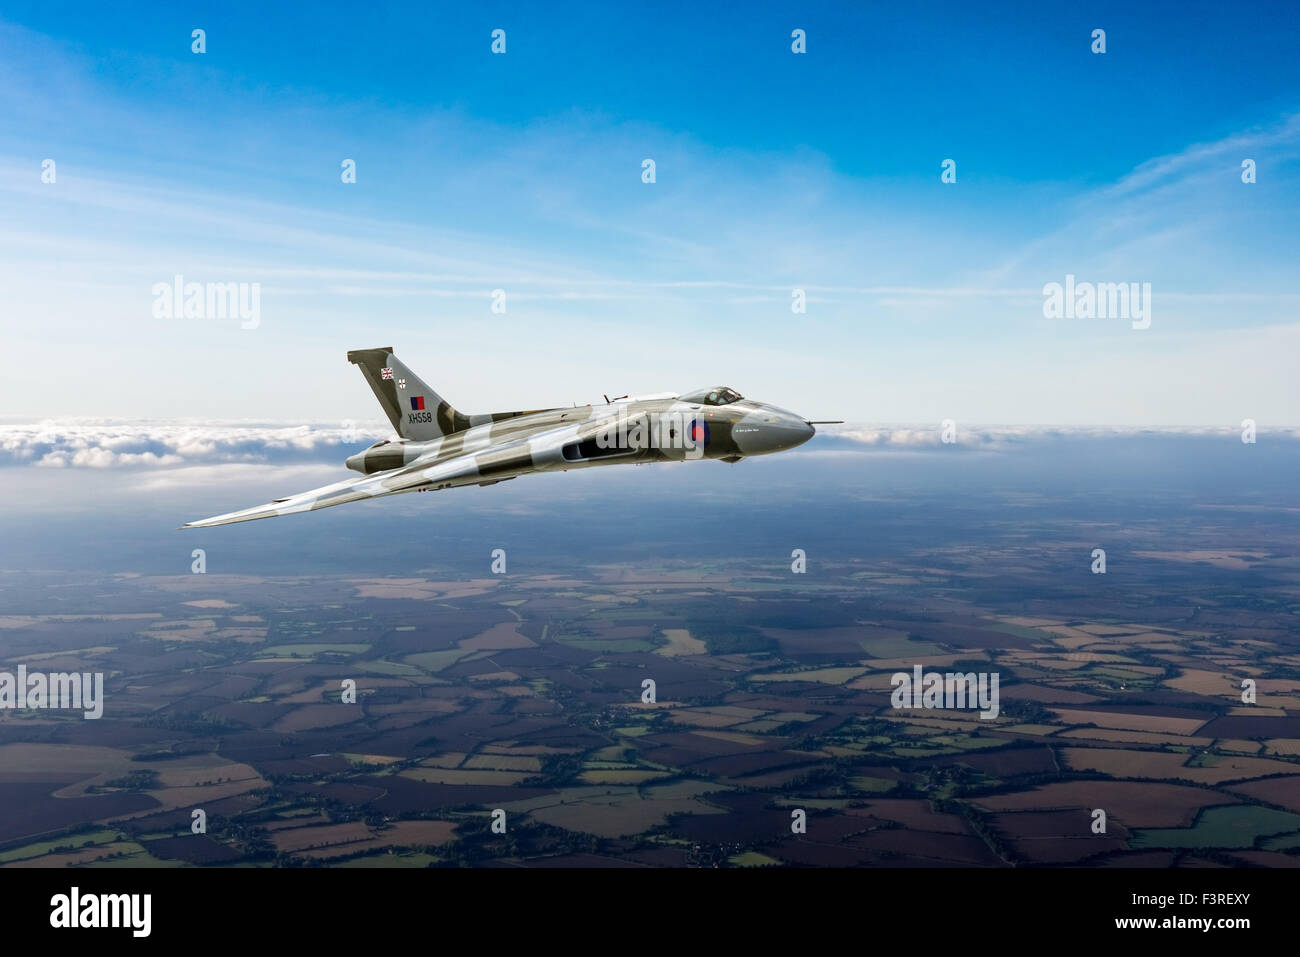 A depiction of an Avro Vulcan delta wing strategic bomber in the skies over the British countryside. - Stock Image